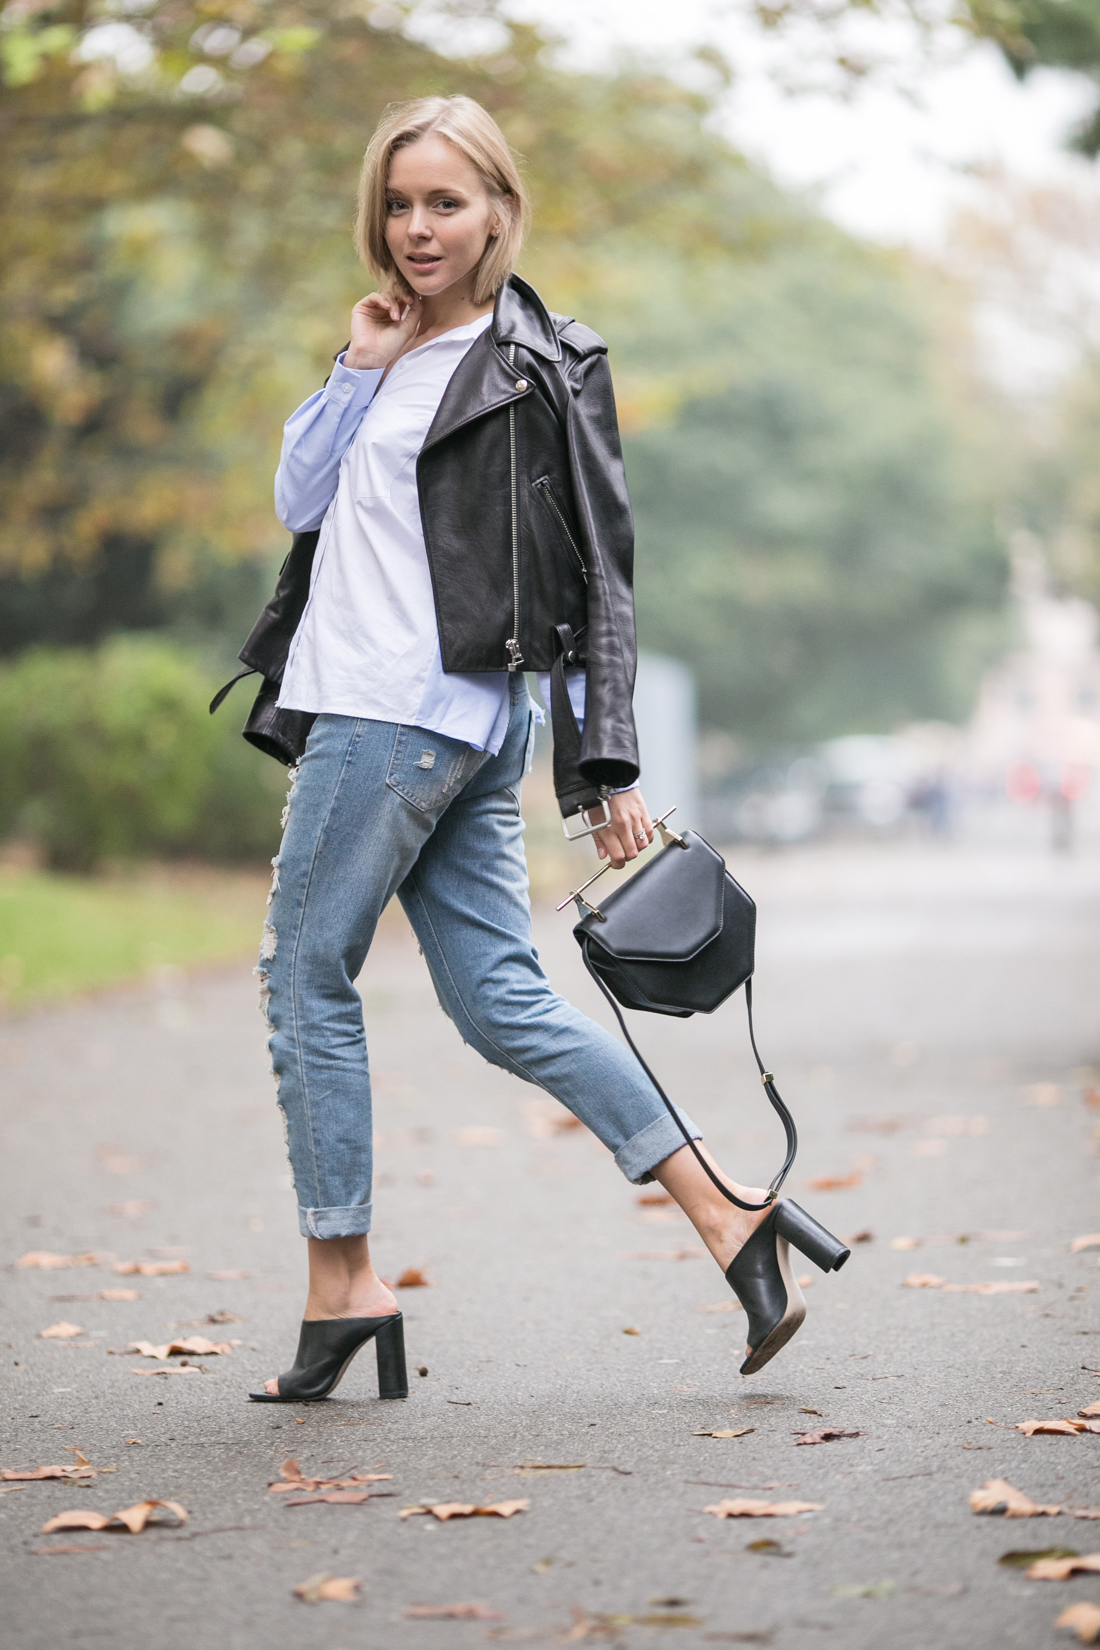 darya kamalova thecablook russian fashion lifestyle blogger in italy outfit spring acne mape leather jacket with boyfriend ripped jeans mules ans m2malletier black bag-15